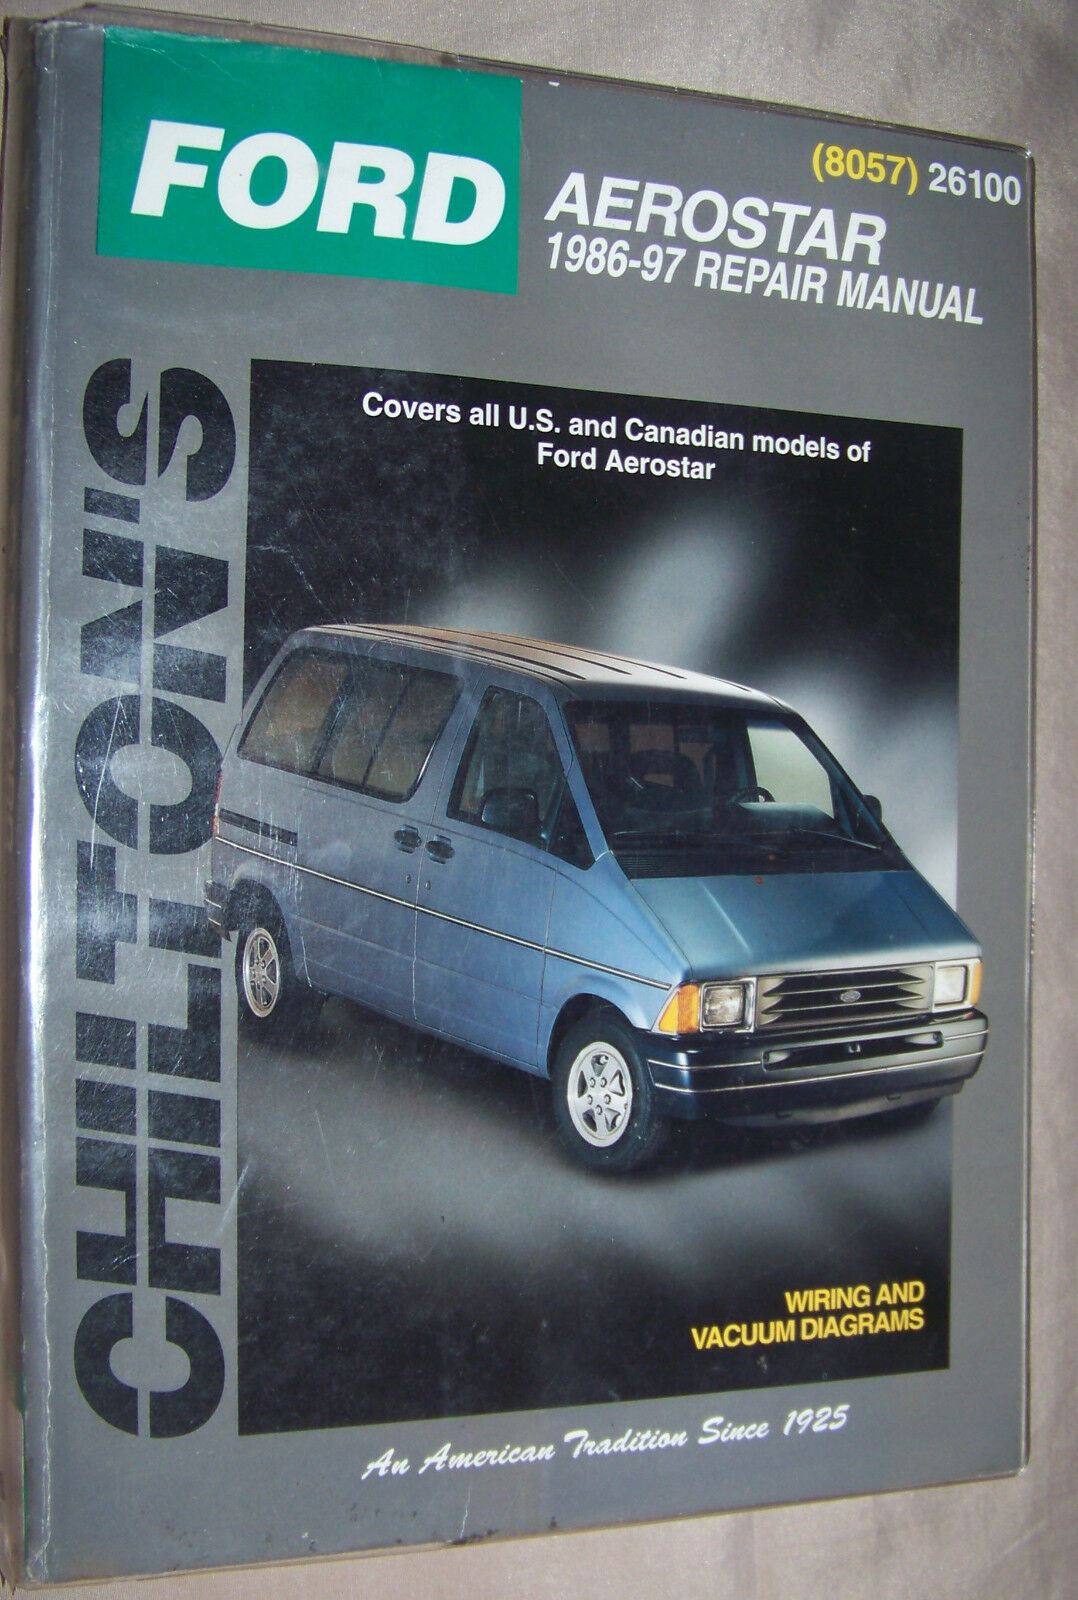 Used Ford Auto Parts And Components For Sale Page 75 Aerostar Engine Diagram Chilton 1986 1997 Service Repair Manual W Wiring Vacuum Diagrams